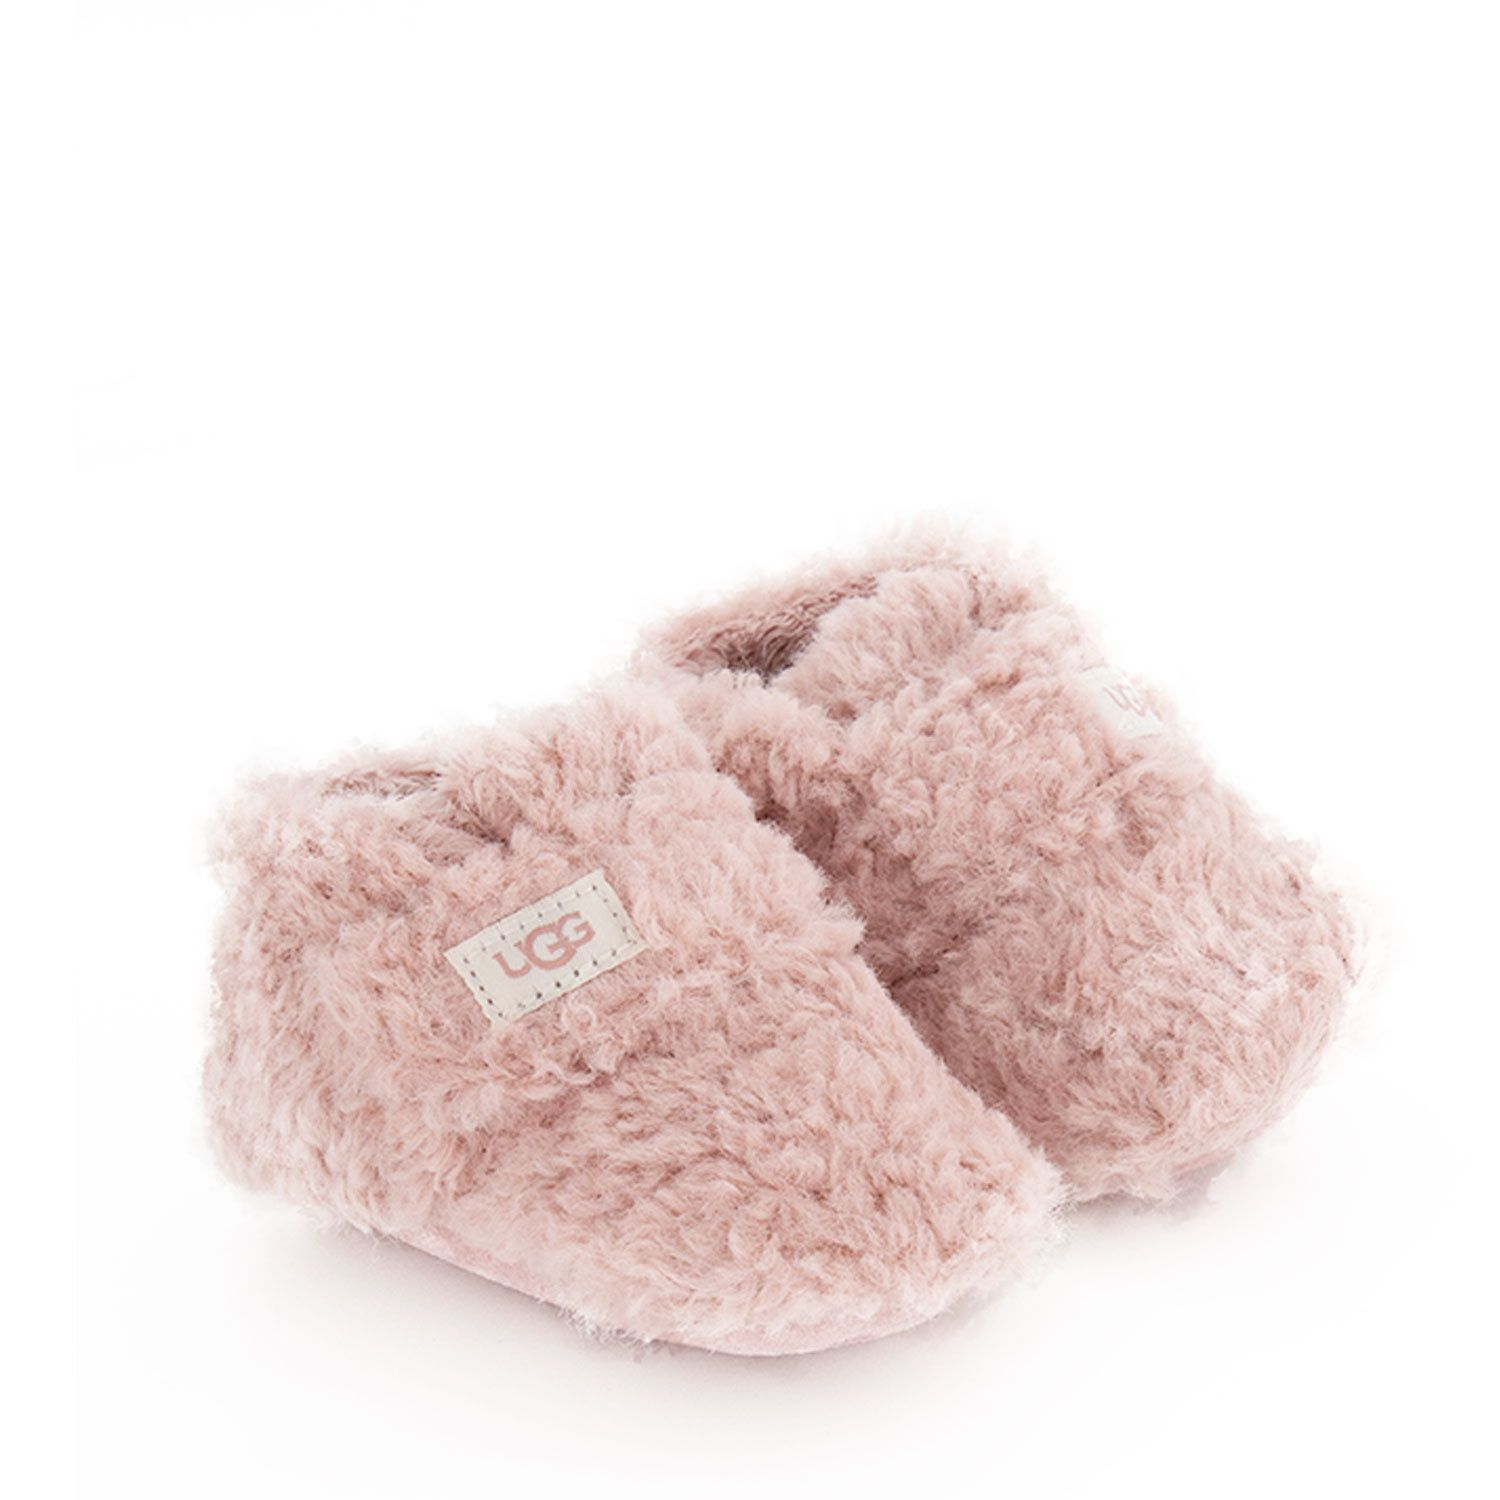 Picture of Ugg 1121045I baby slippers light pink